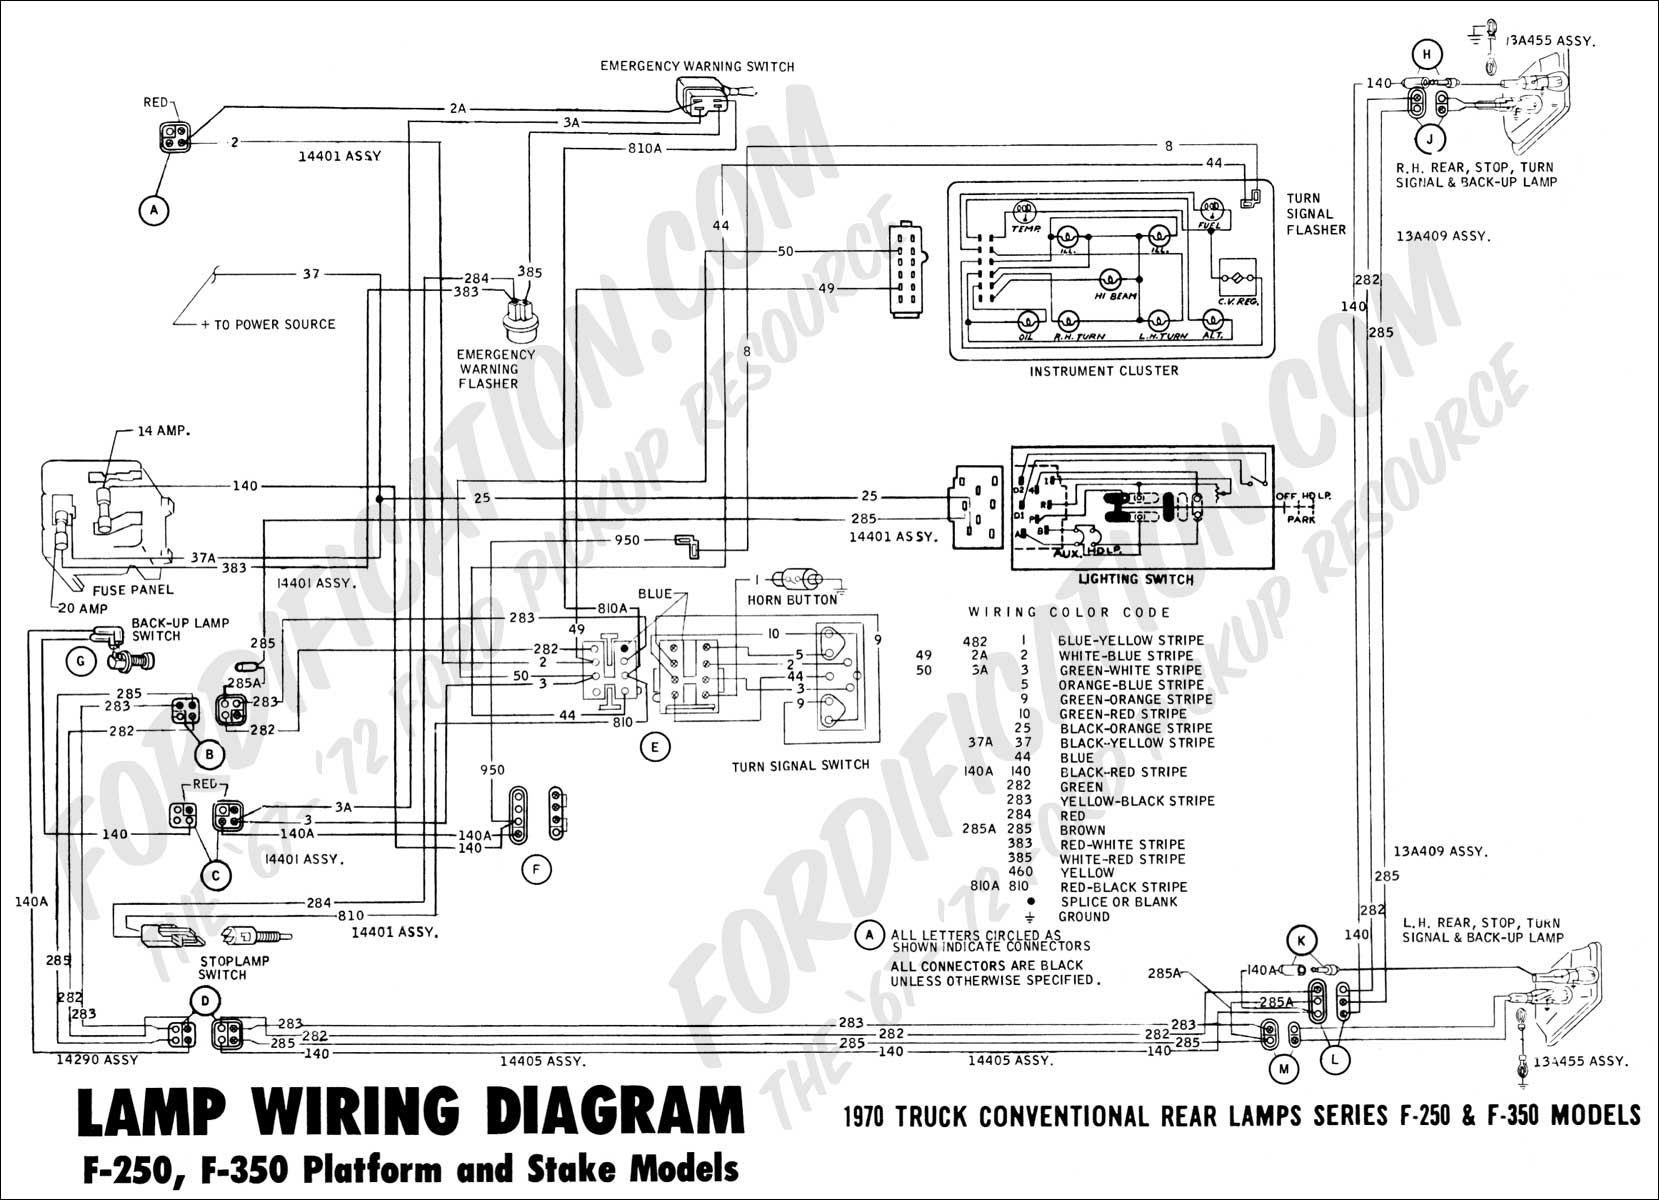 ford ignition wiring diagram ford image wiring diagram 2006 ford f250 wiring diagram wirdig on ford ignition wiring diagram